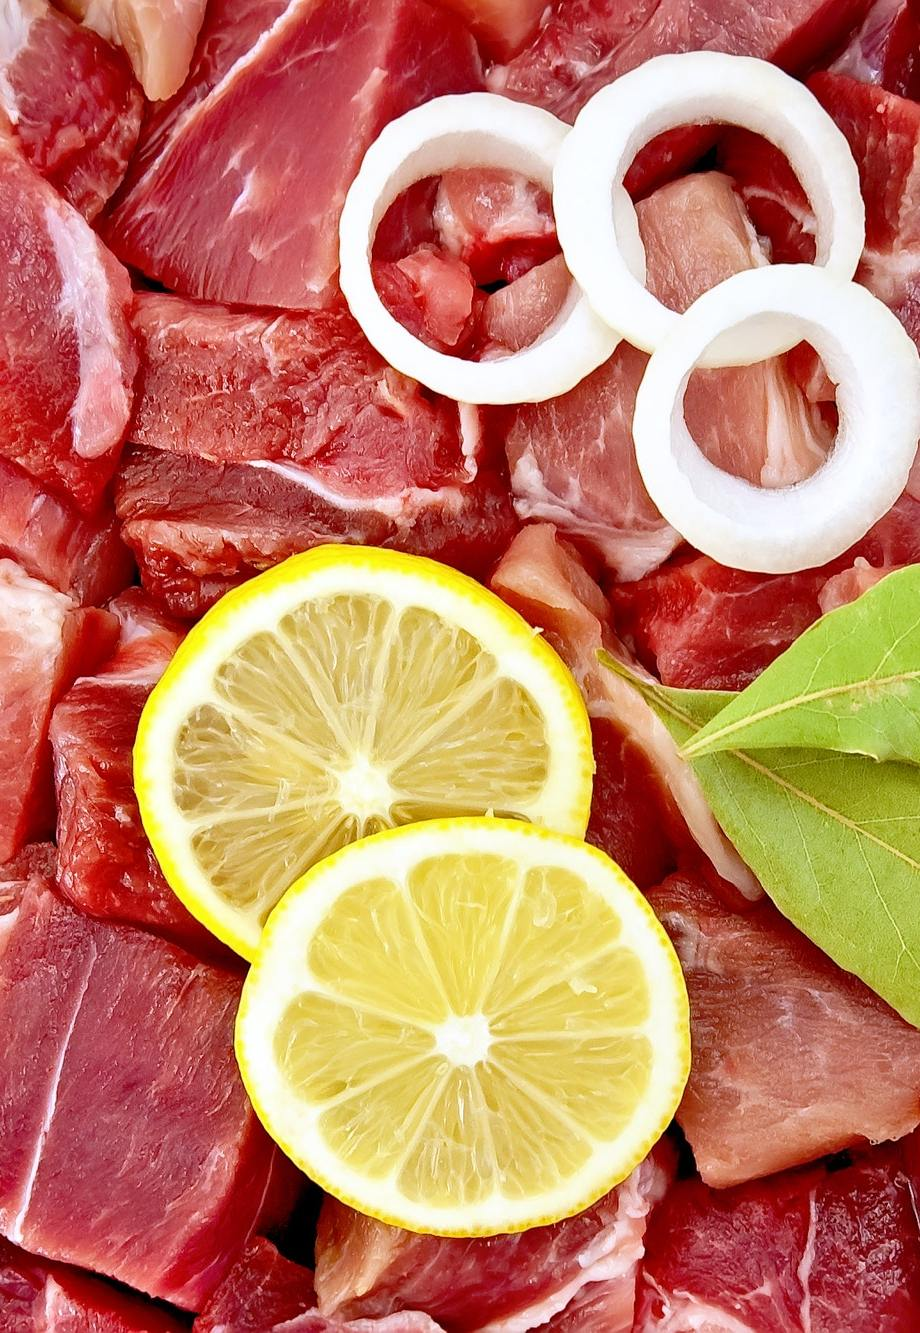 Meat with onion and lemon texture